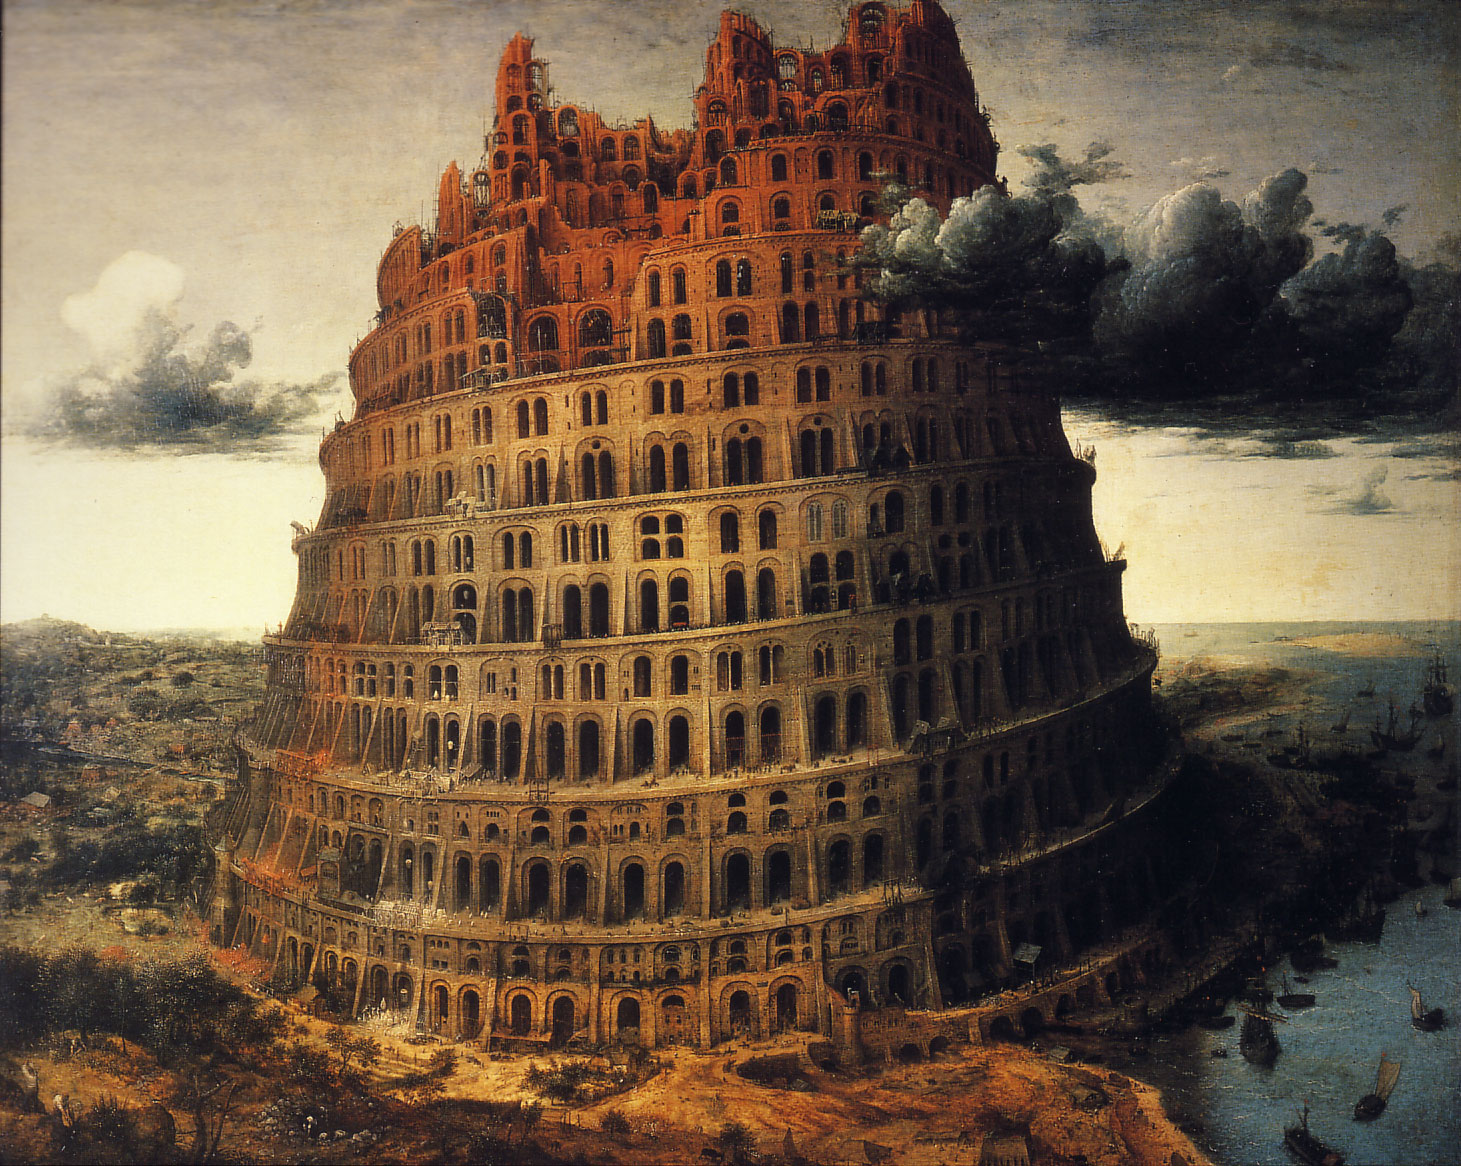 The Tower of Babel by Pieter Breugel